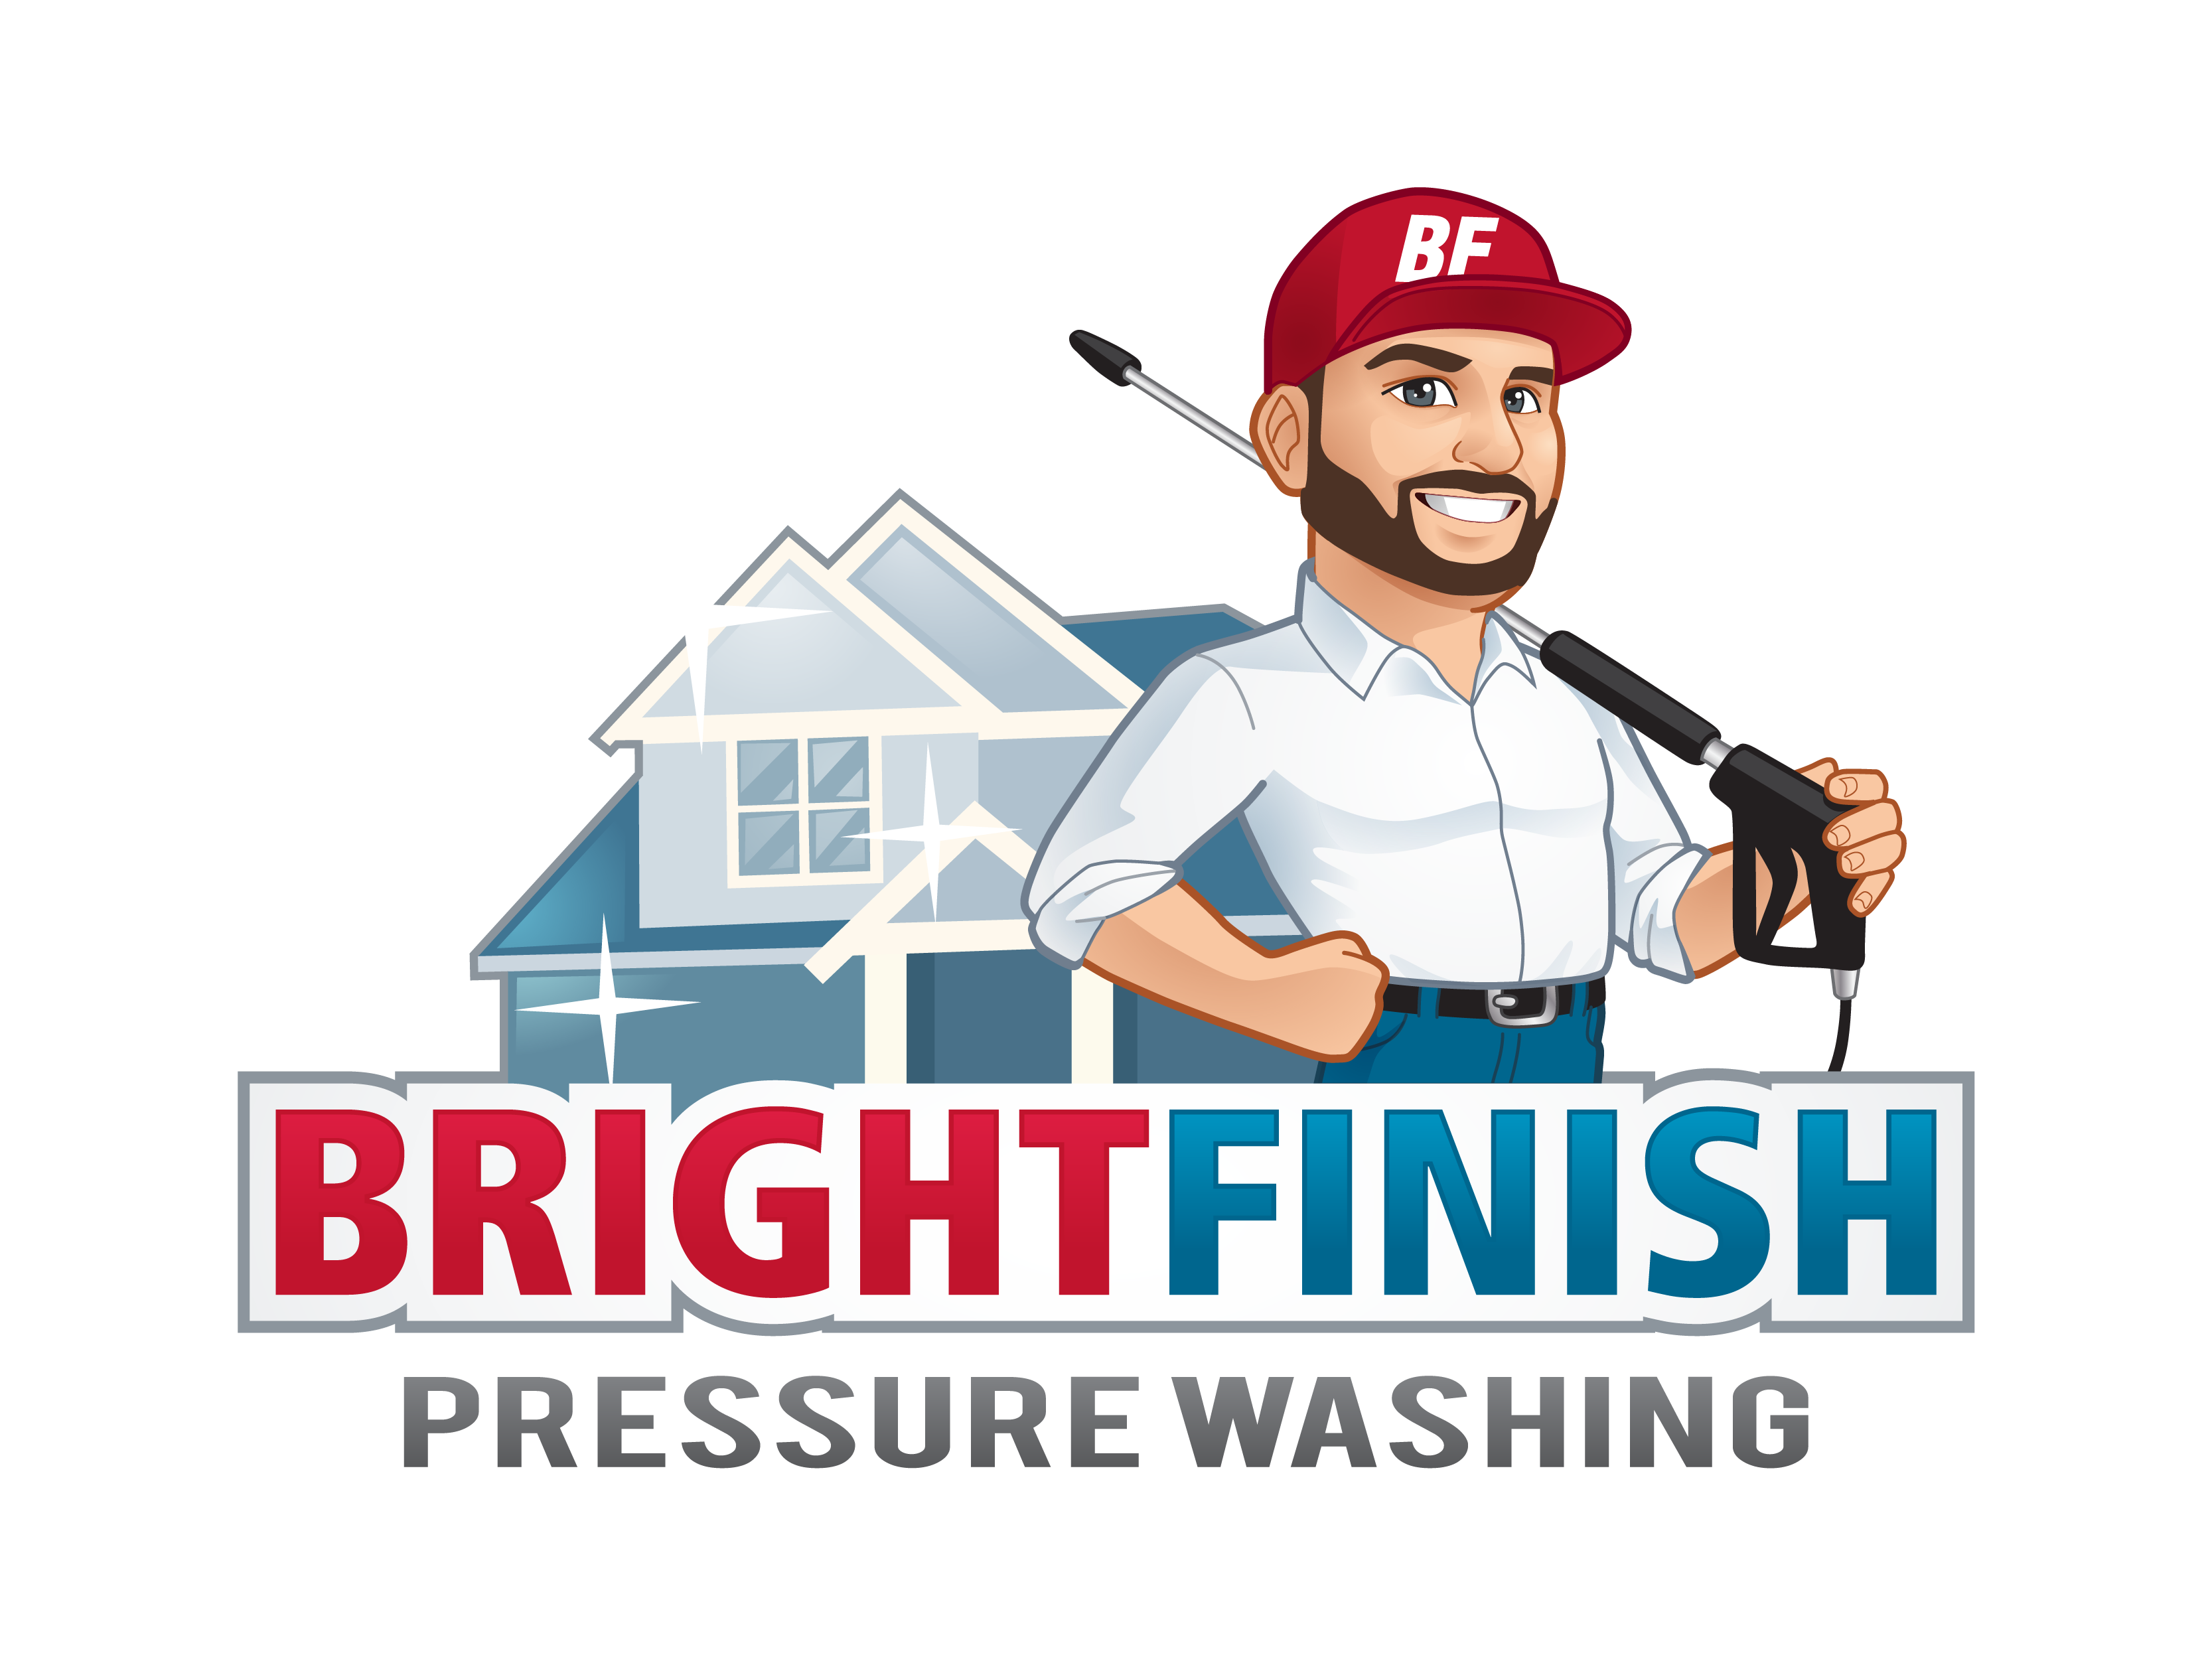 Power washing service united. Worry clipart work pressure